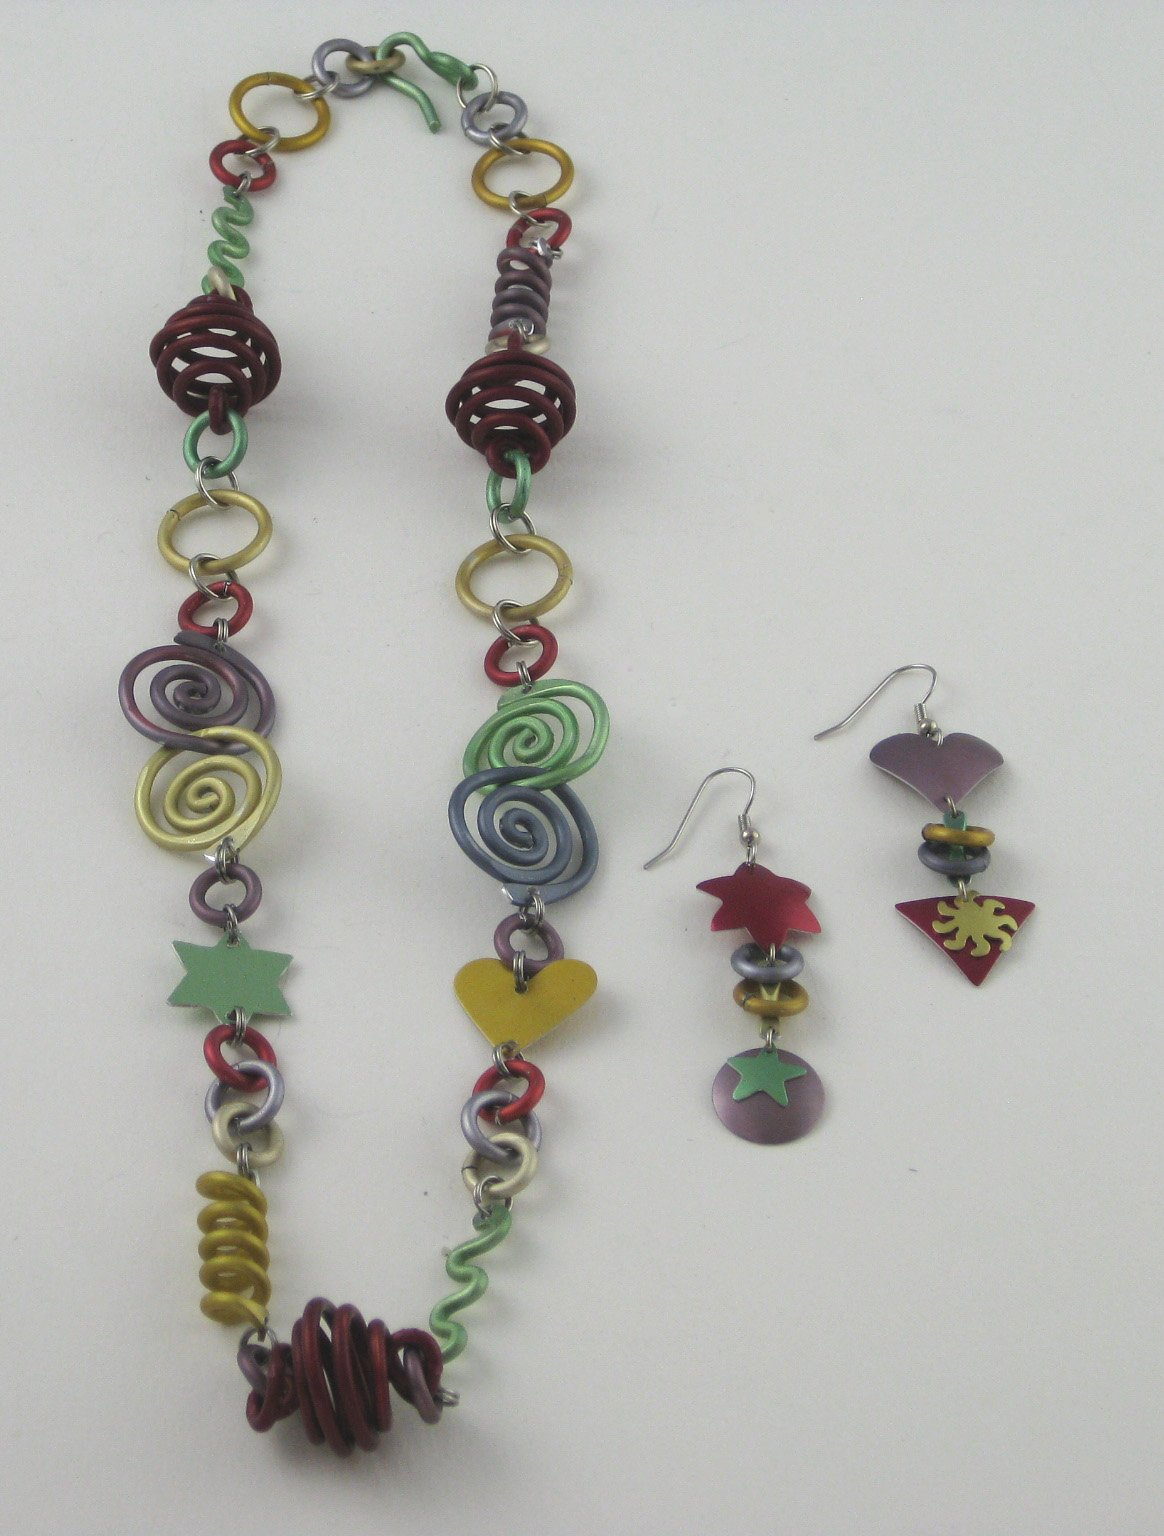 how to clean anodized aluminum jewelry